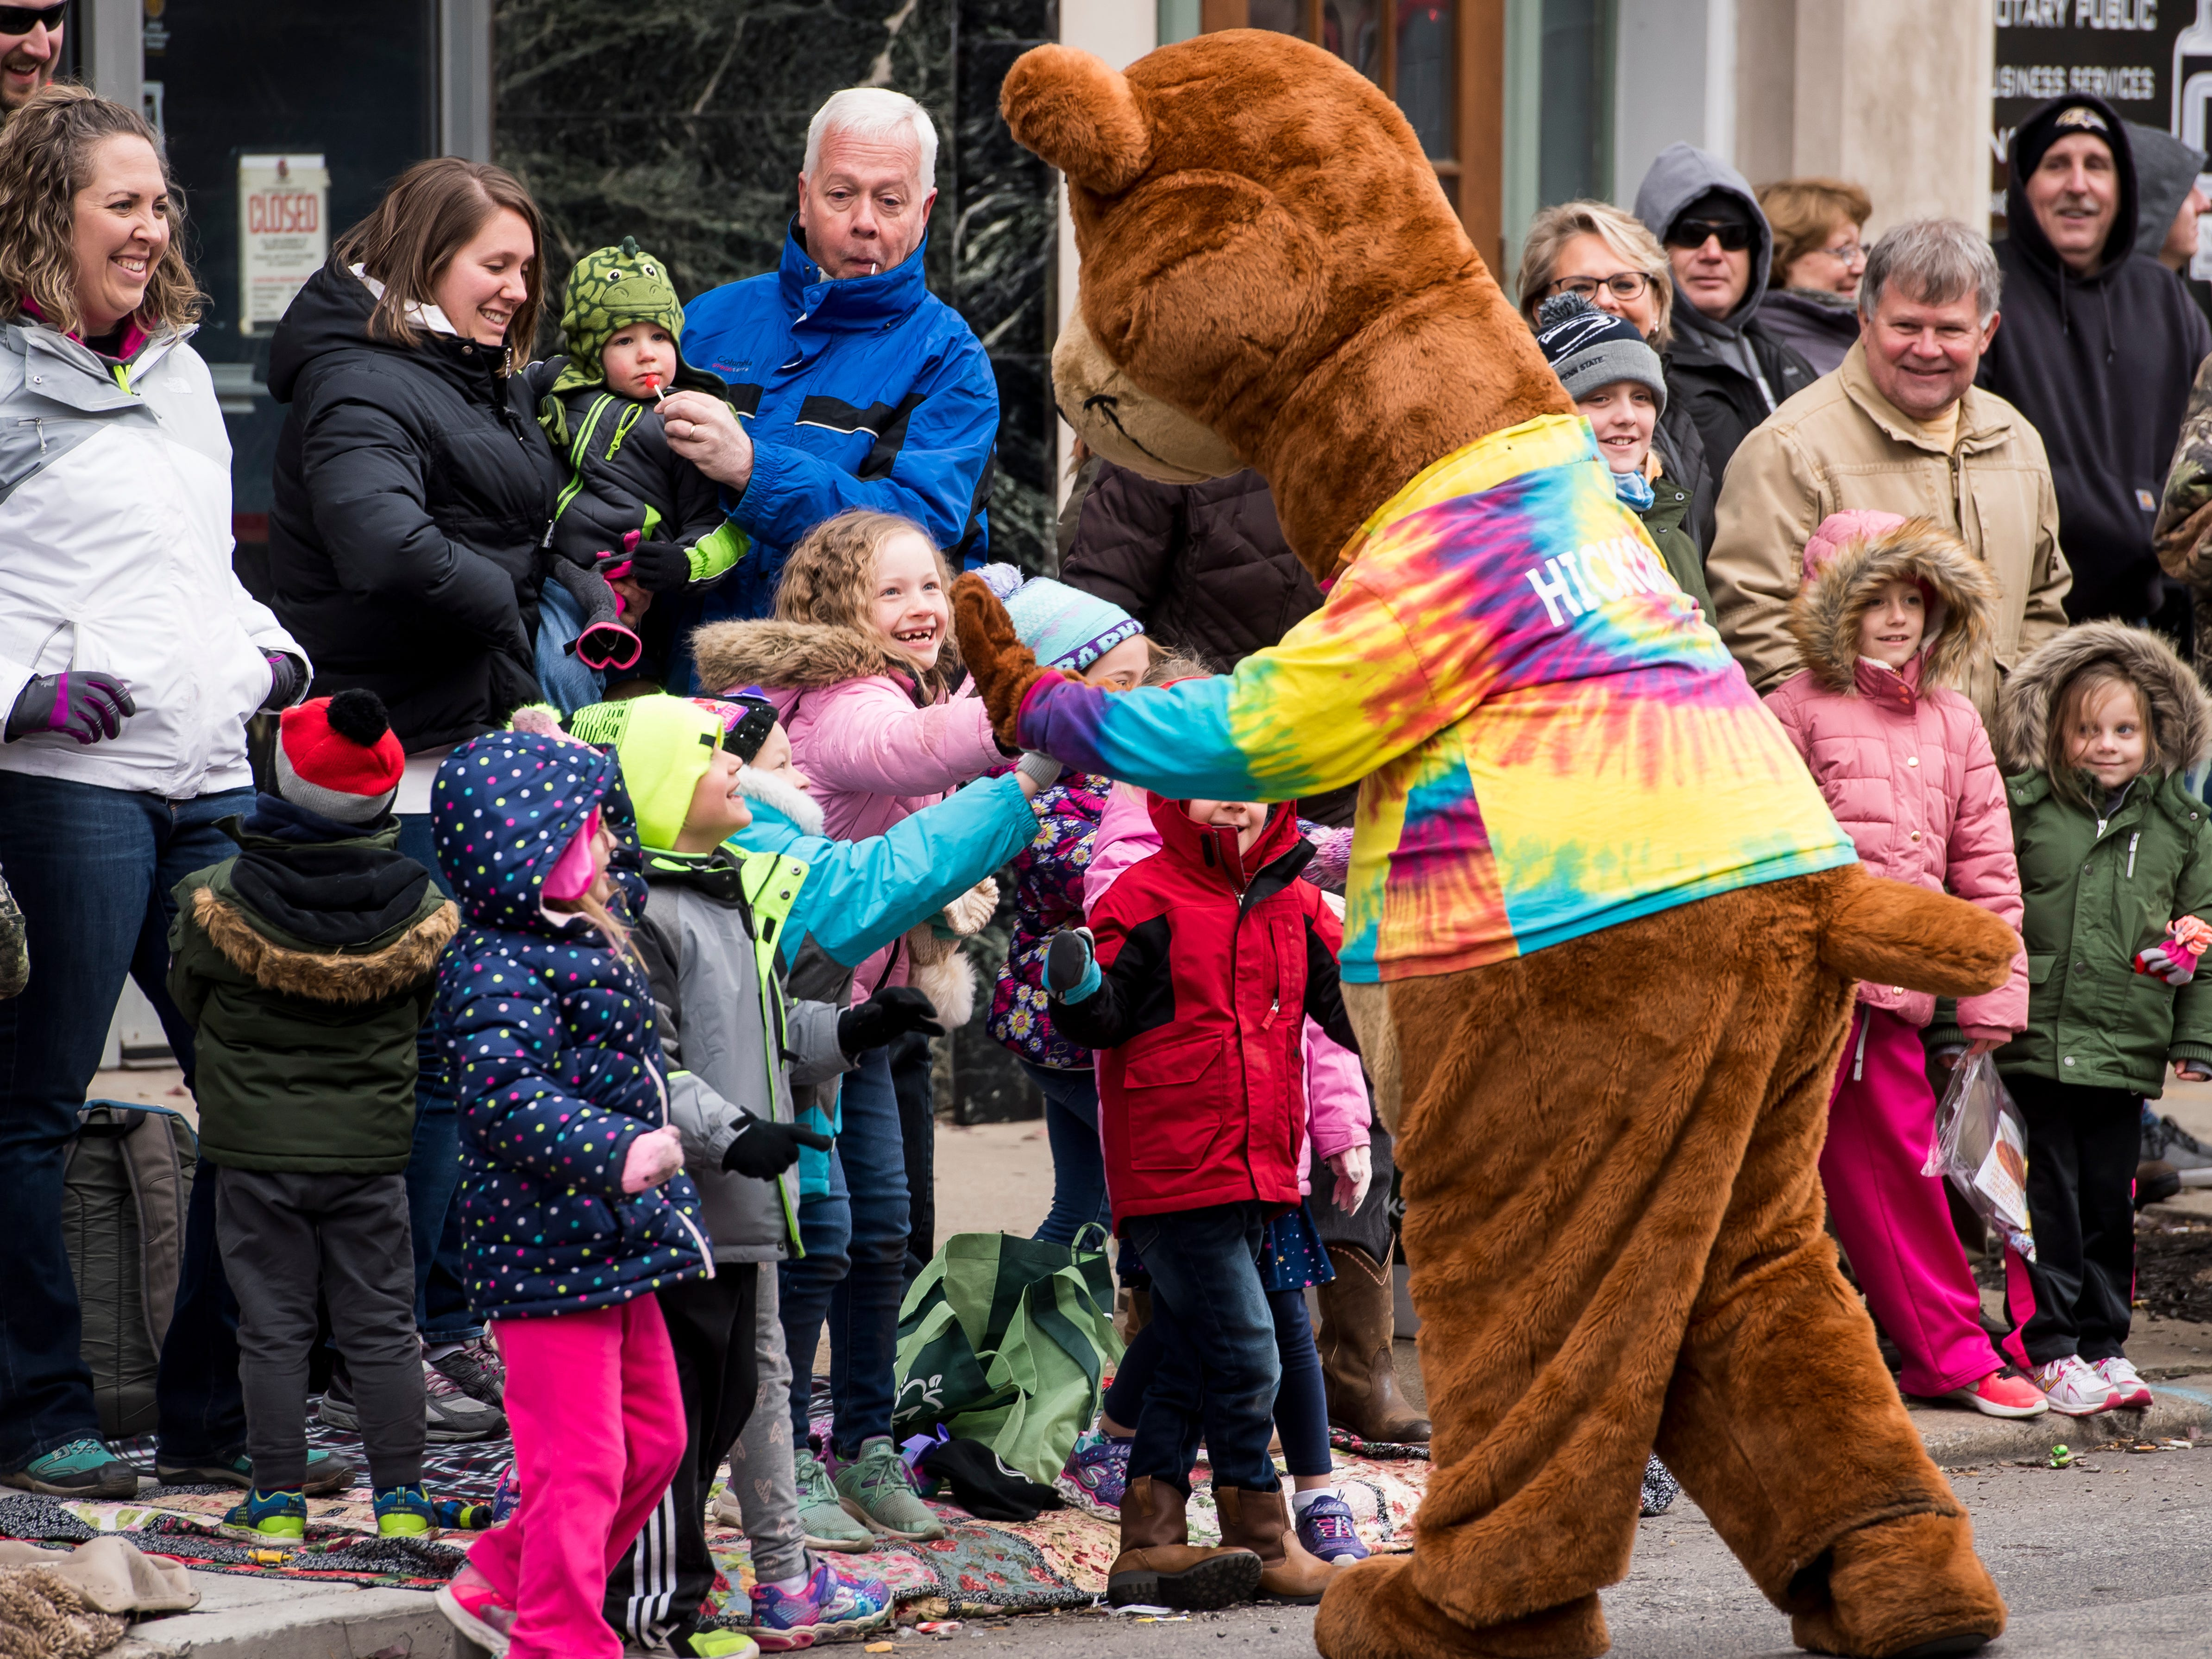 The Hickory Falls mascot doles out high-fives during the annual Hanover Christmas parade on Friday, November, 23, 2018.